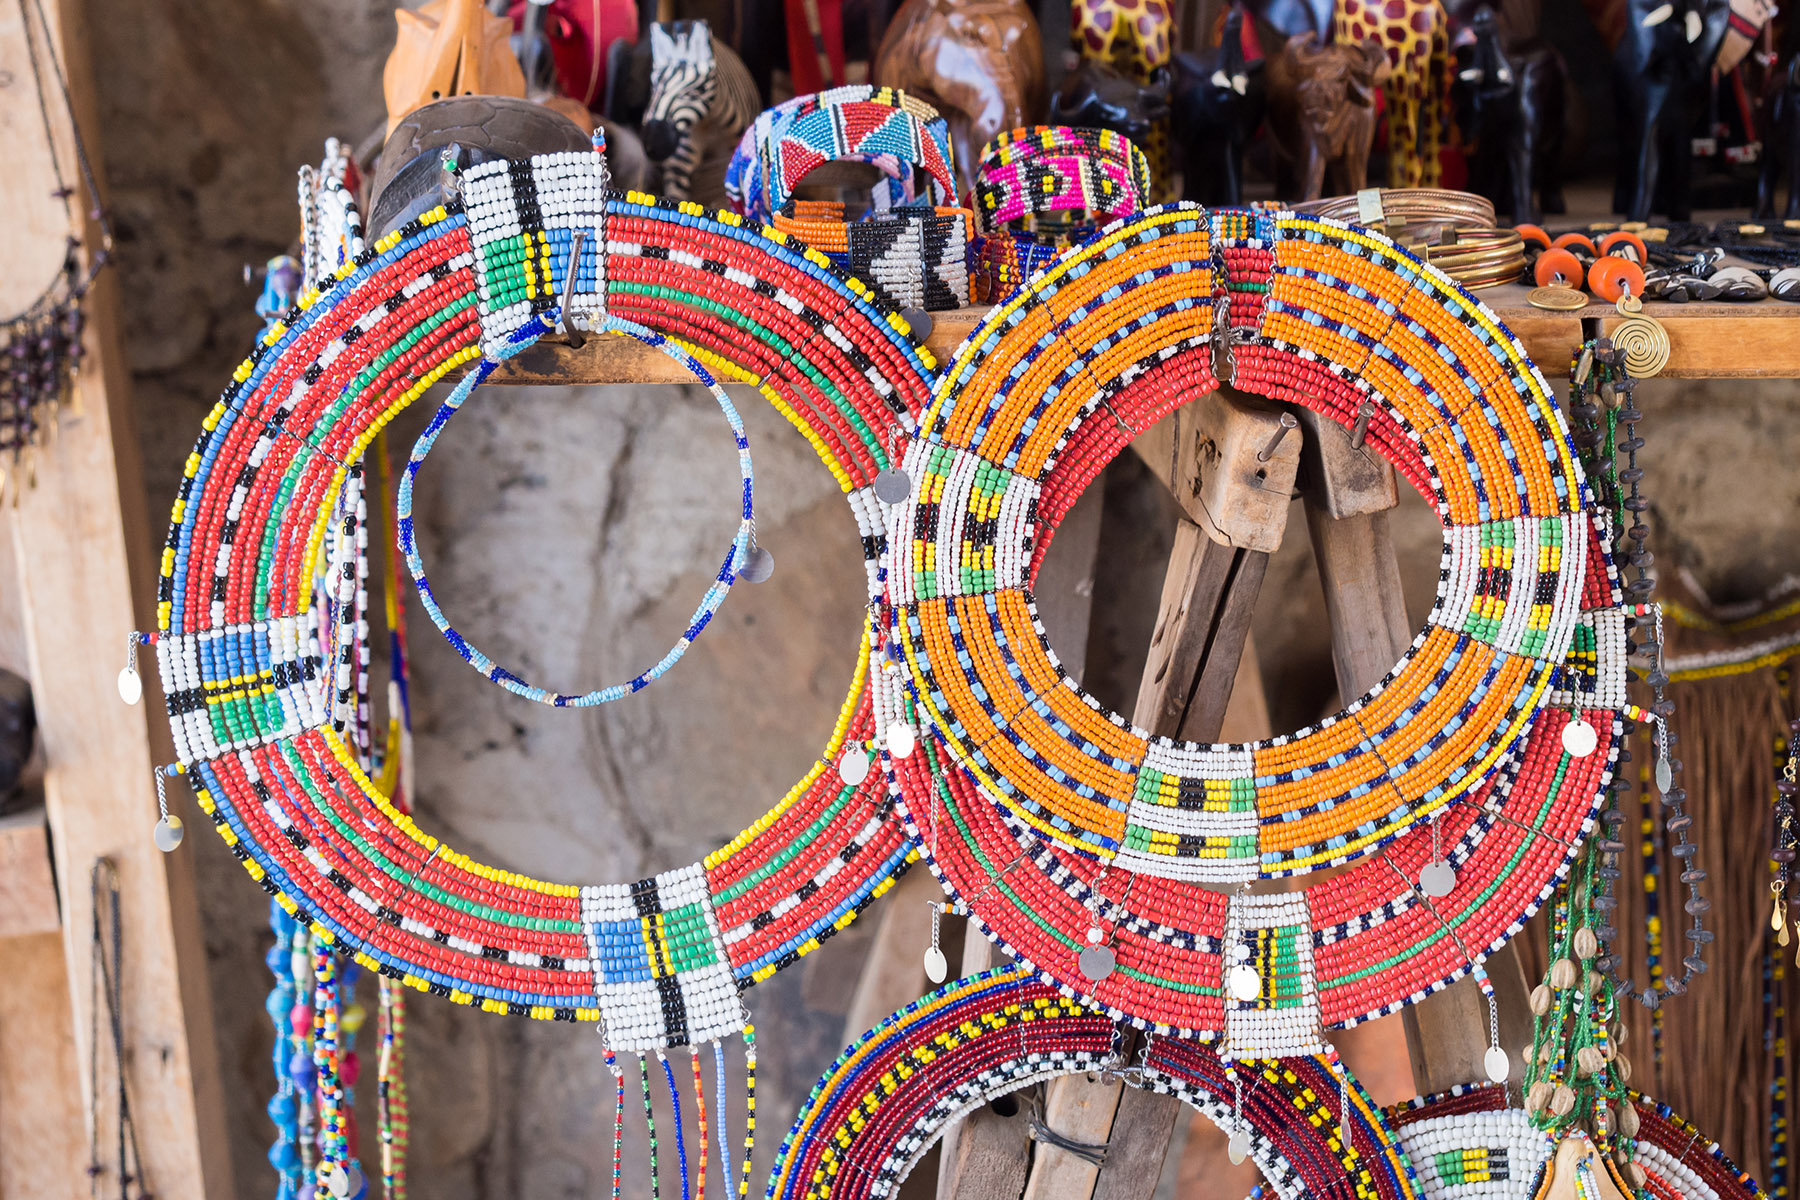 Colorful Maasai bead necklaces and other jewelry sold as a souvenirs at a local Maasai Market.